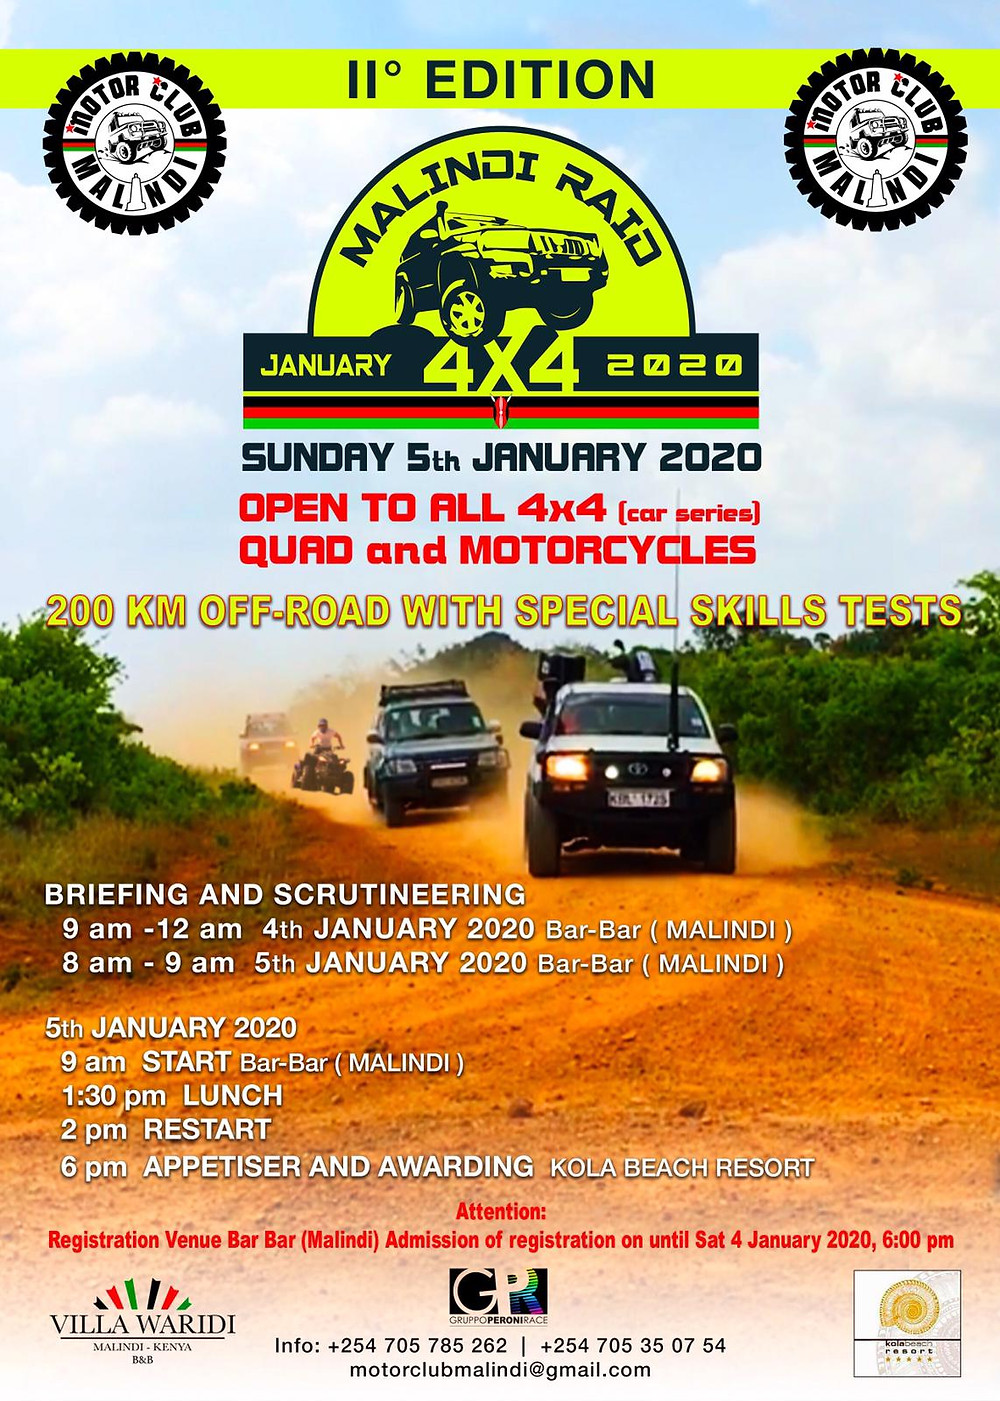 The flyer of the Malindi Raid 4x4 on 5th January 2020